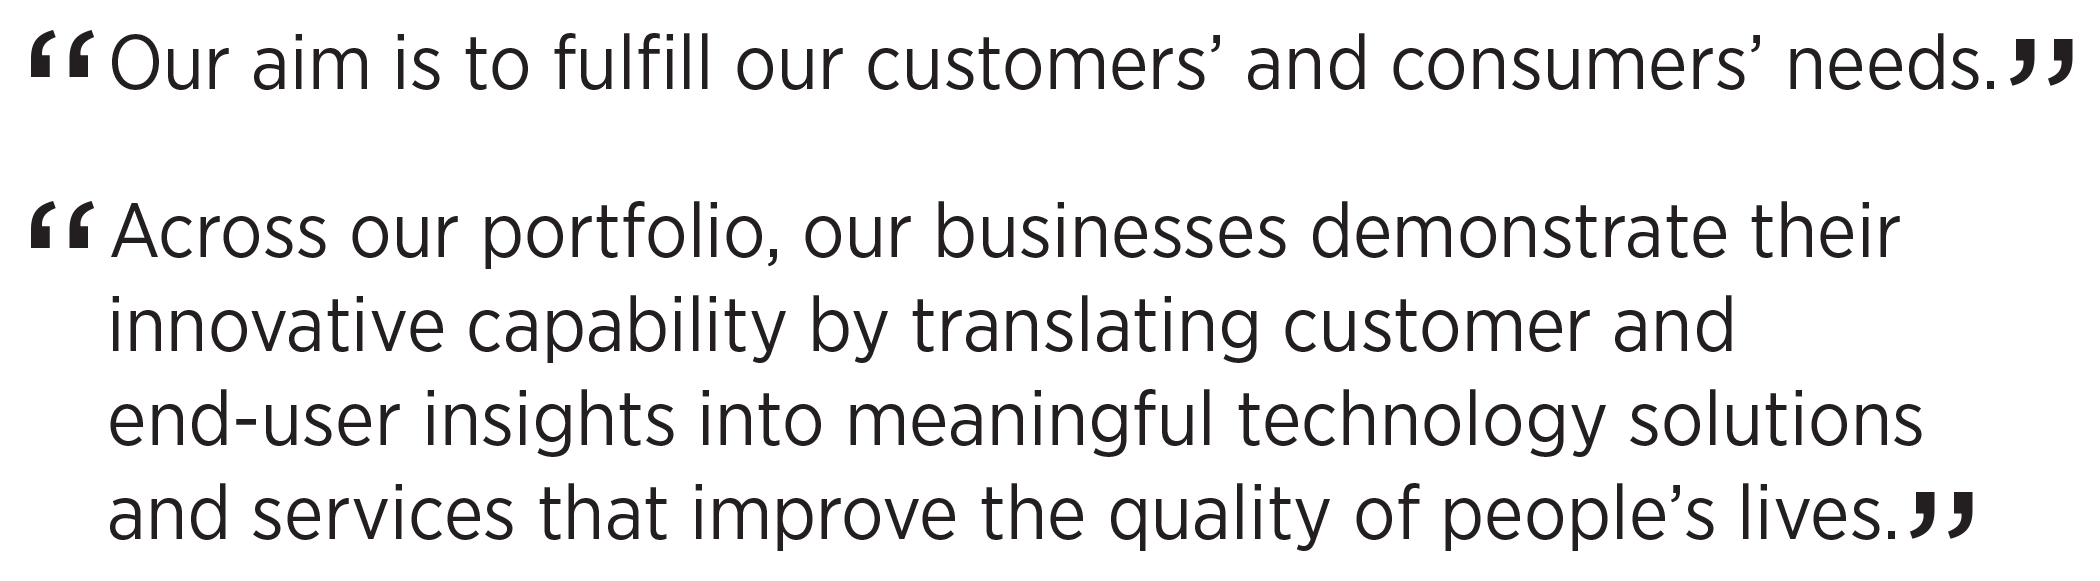 'Our aim is to fulfill our customers' and consumers' needs.' 'Across our portfolio, our businesses demonstrate their innovative capability by translating customer and end-user insights into meaningful technology solutions and services that improve the quality of people's lives.'